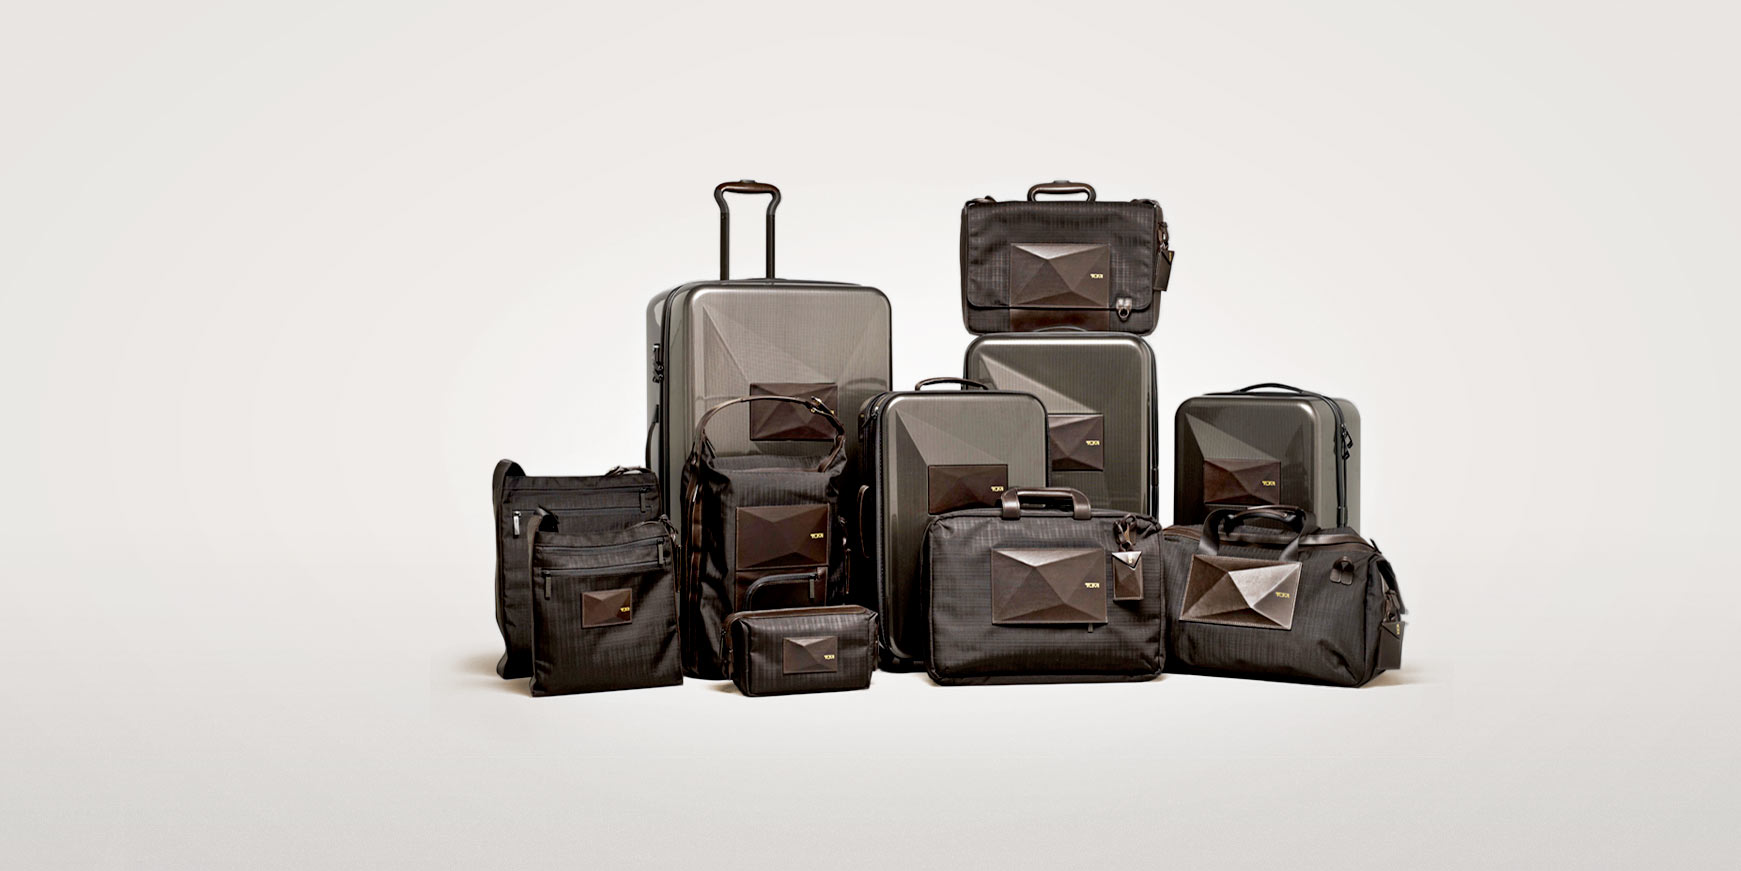 """Dror For Tumi   Client: Tumi (Work done at Dror.) 2012  The Dror for Tumi Collection featured luggage that transformed to meet the modern business traveler's ever-changing needs. The 11-piece collection included the first ever expandable hard-case carry-on for Tumi. Clabots' revolutionary """"living hinge"""" feature allowed one to adjust the bag's depth and nearly double its overall capacity.  Award:  Red Dot Award for Product Design 2013 ( International Expandable Carry-On )   Award:  Travel & Leisure's 2013 Design Awards ( Tote / Backpack )"""